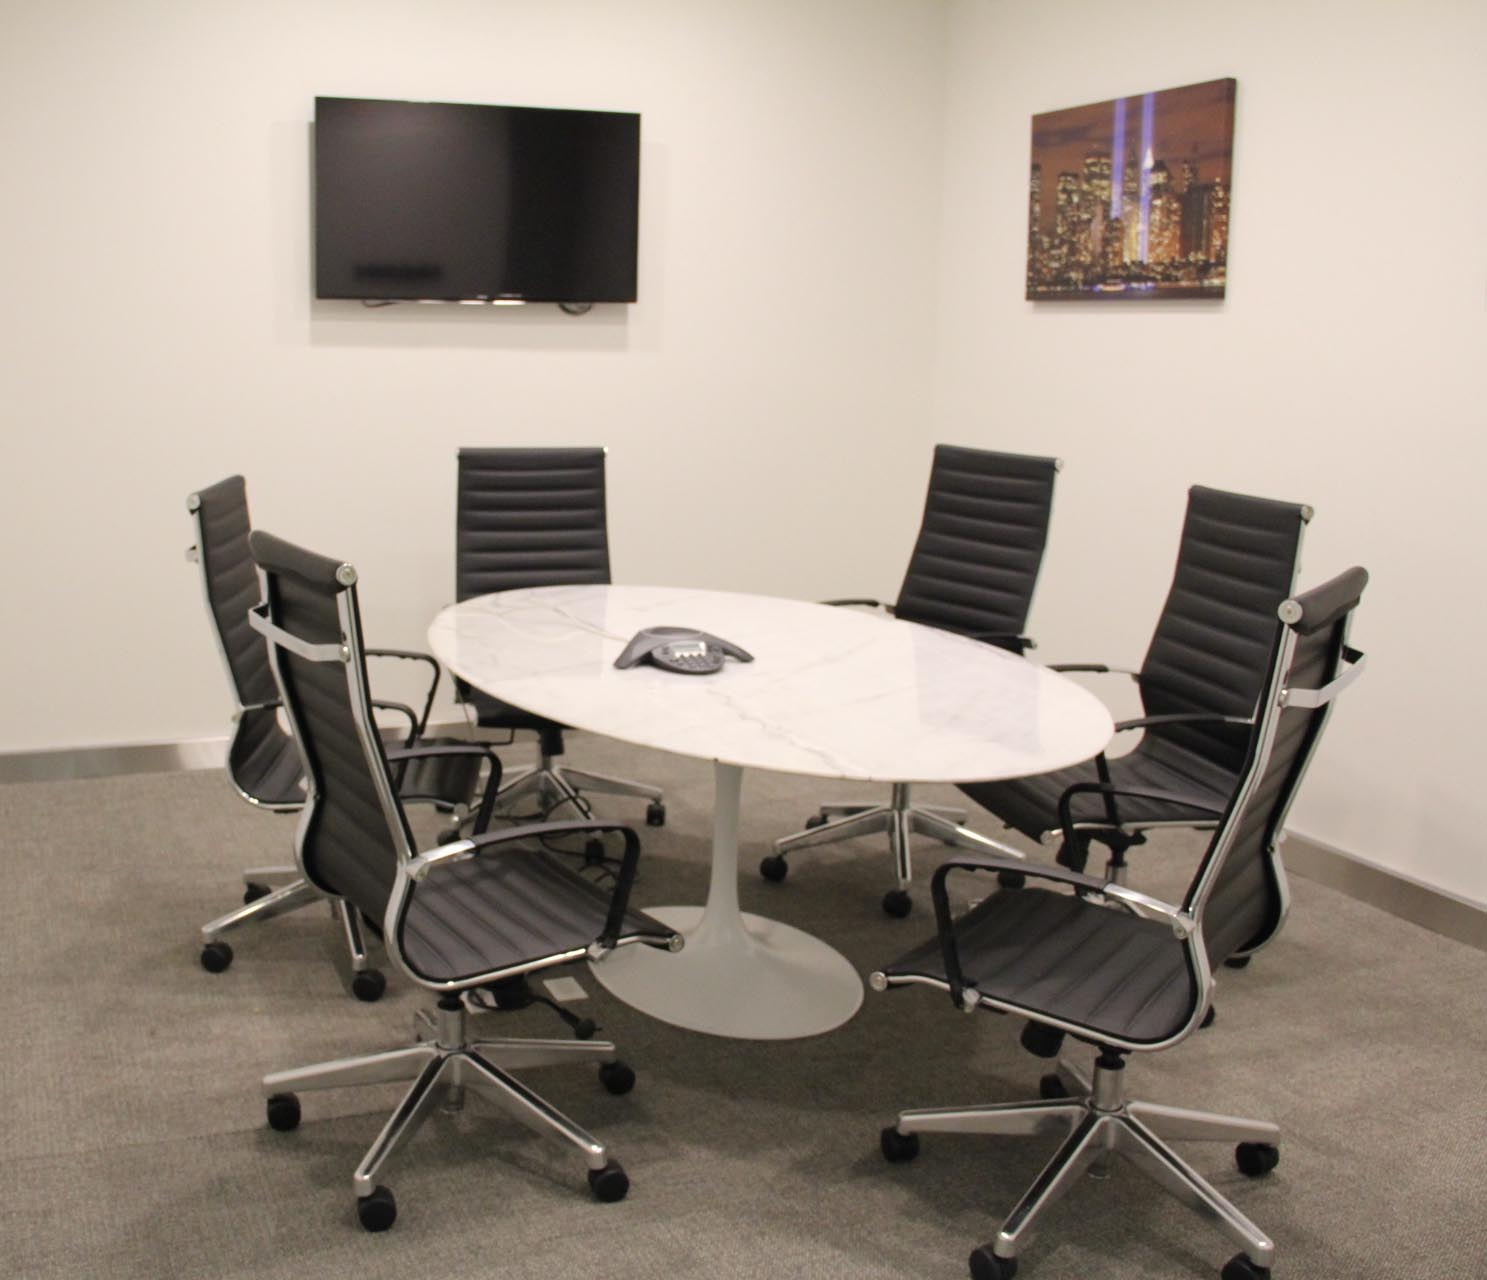 5 Ways To Use Flexible Meeting Room Space